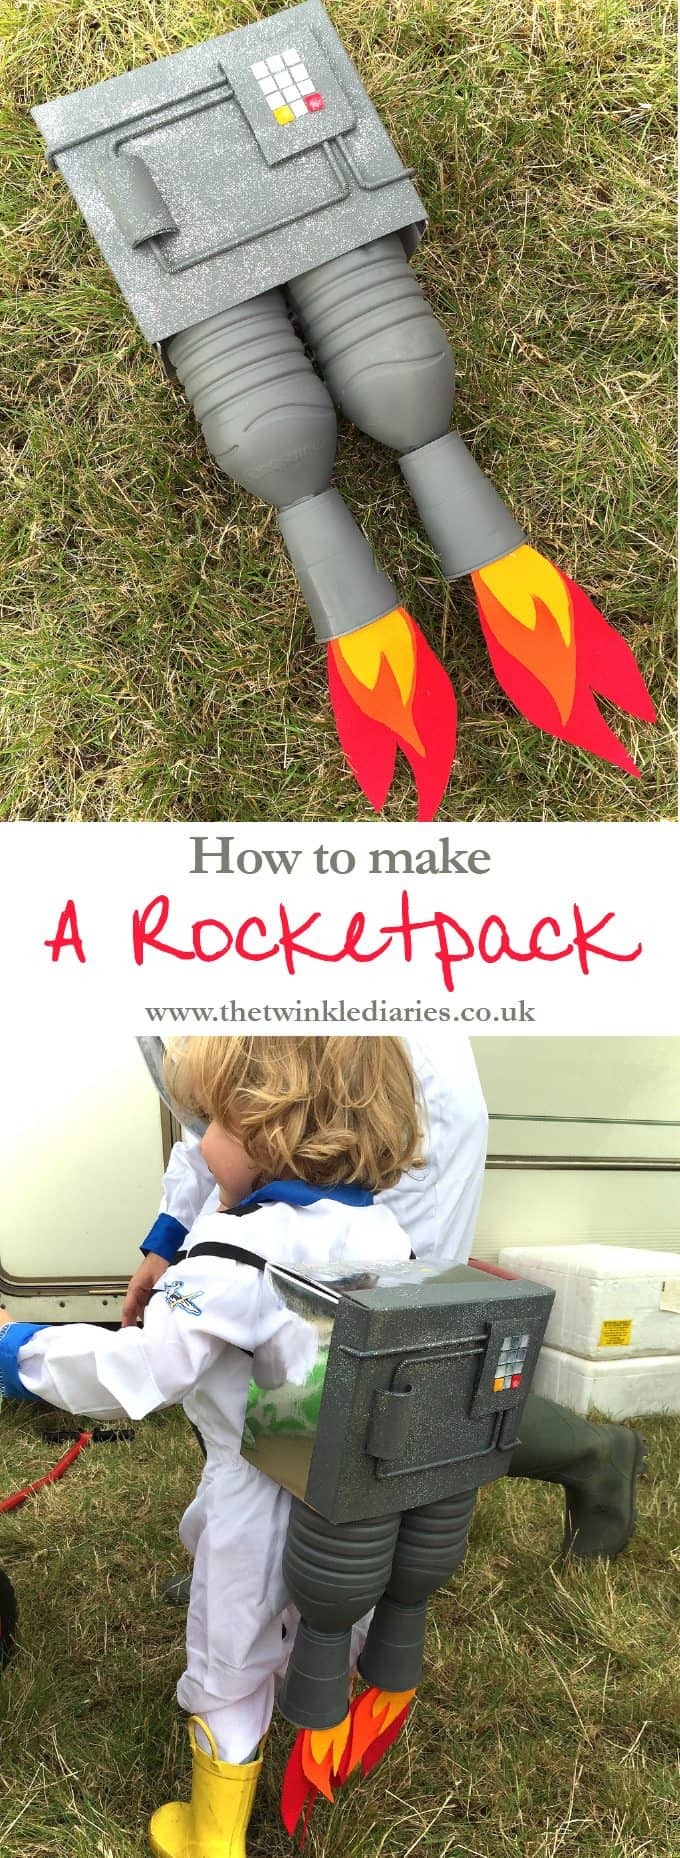 how-to-make-a-rocket-pack-Pinterest